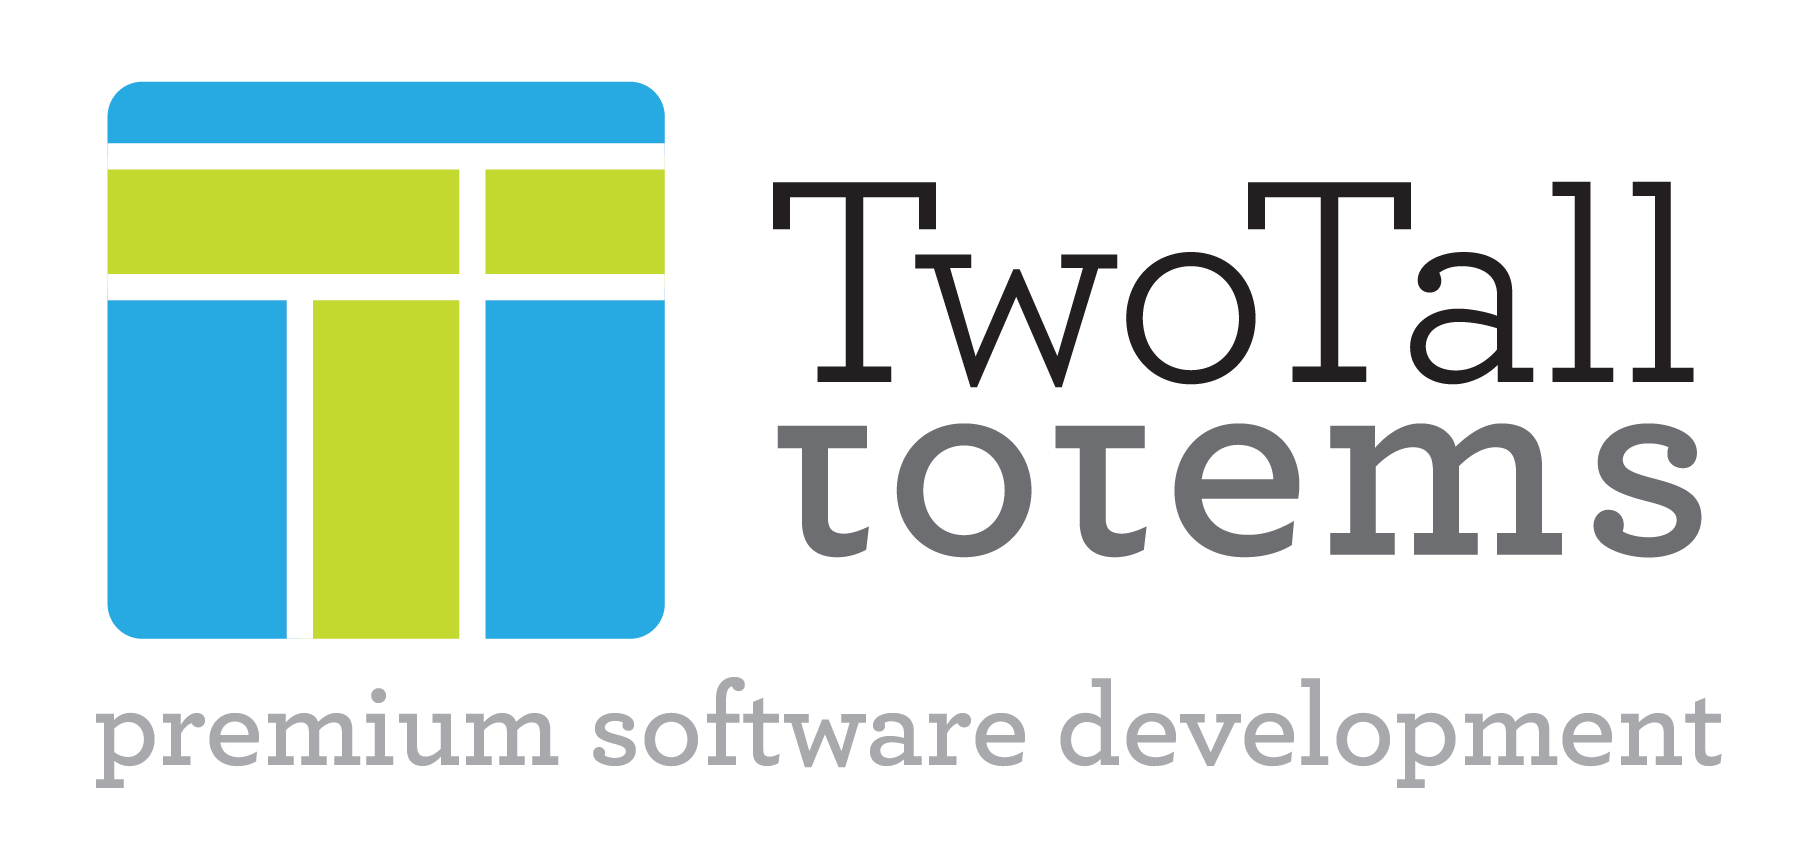 Two Tall Totems Logo